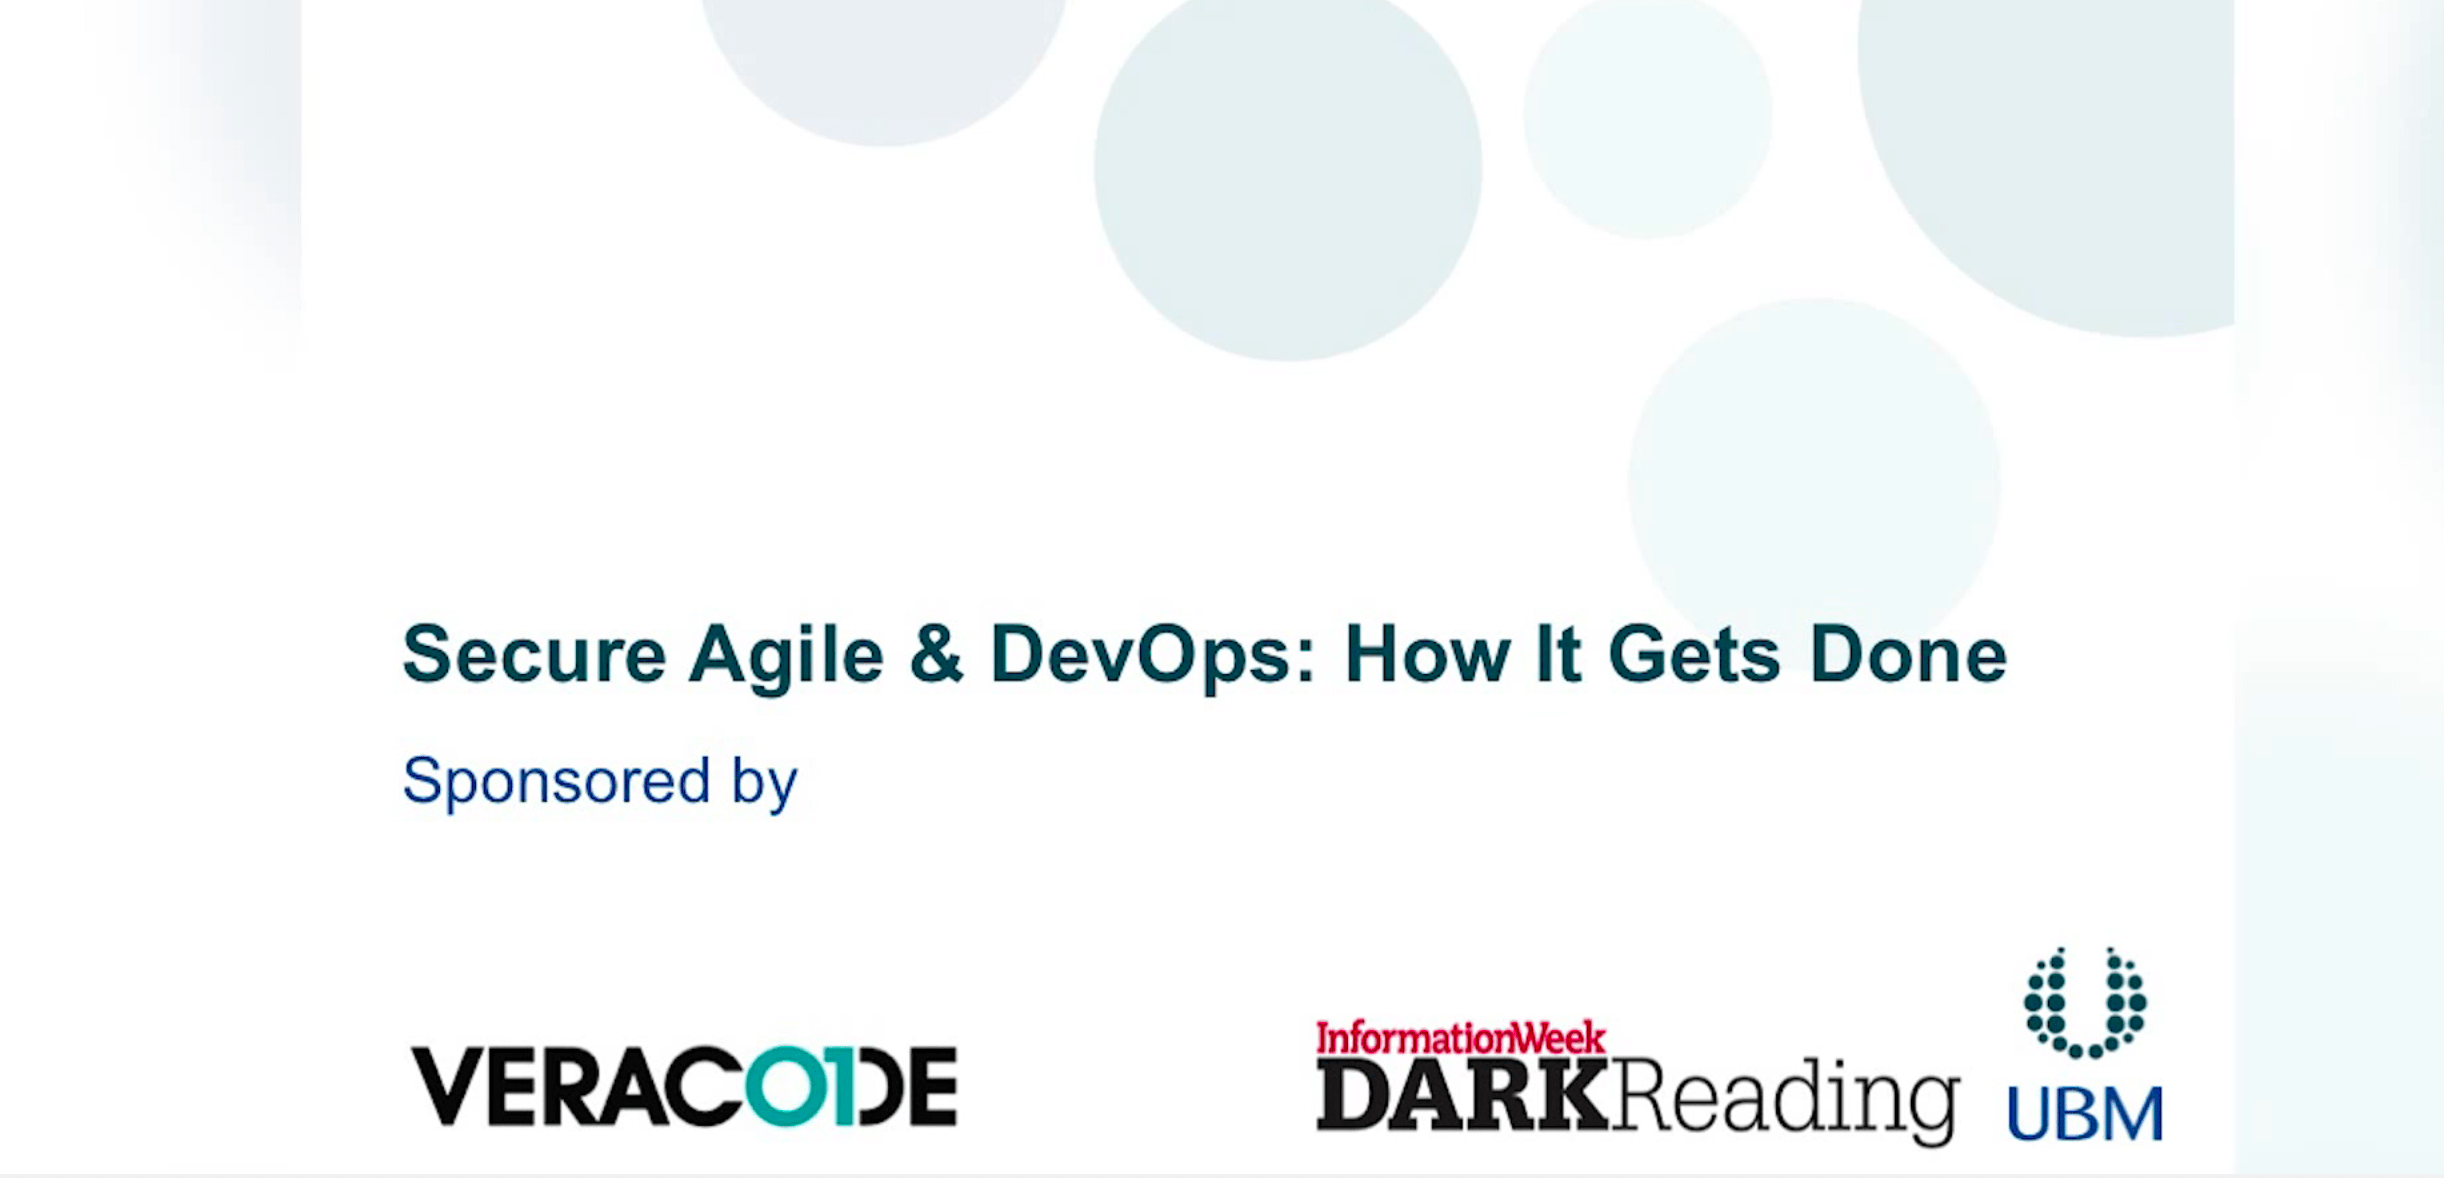 Veracode discusses security in agile devops